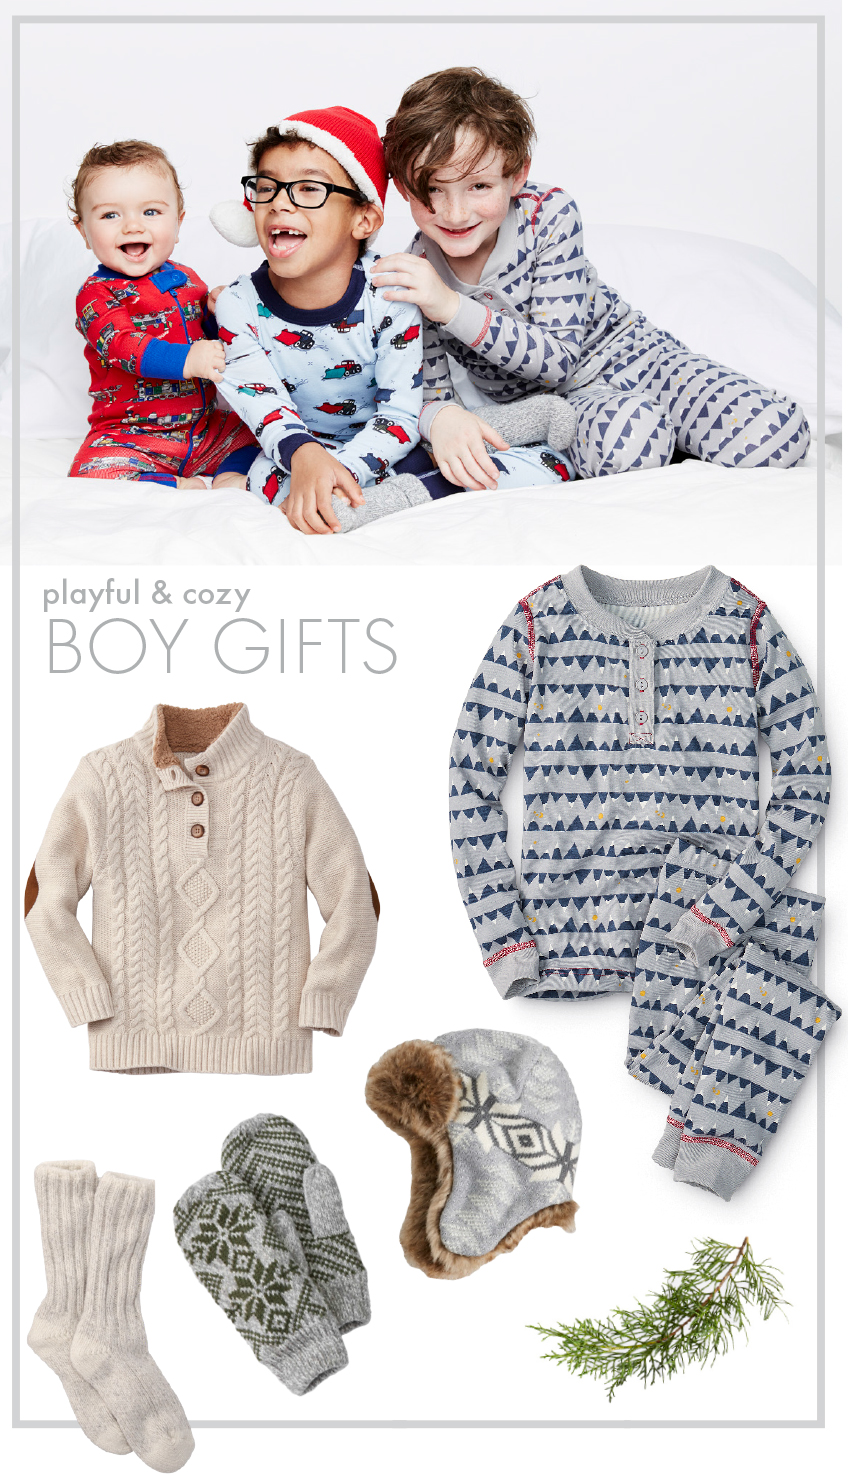 Boy Soft Sleep Gift Guide - Hanna Andersson